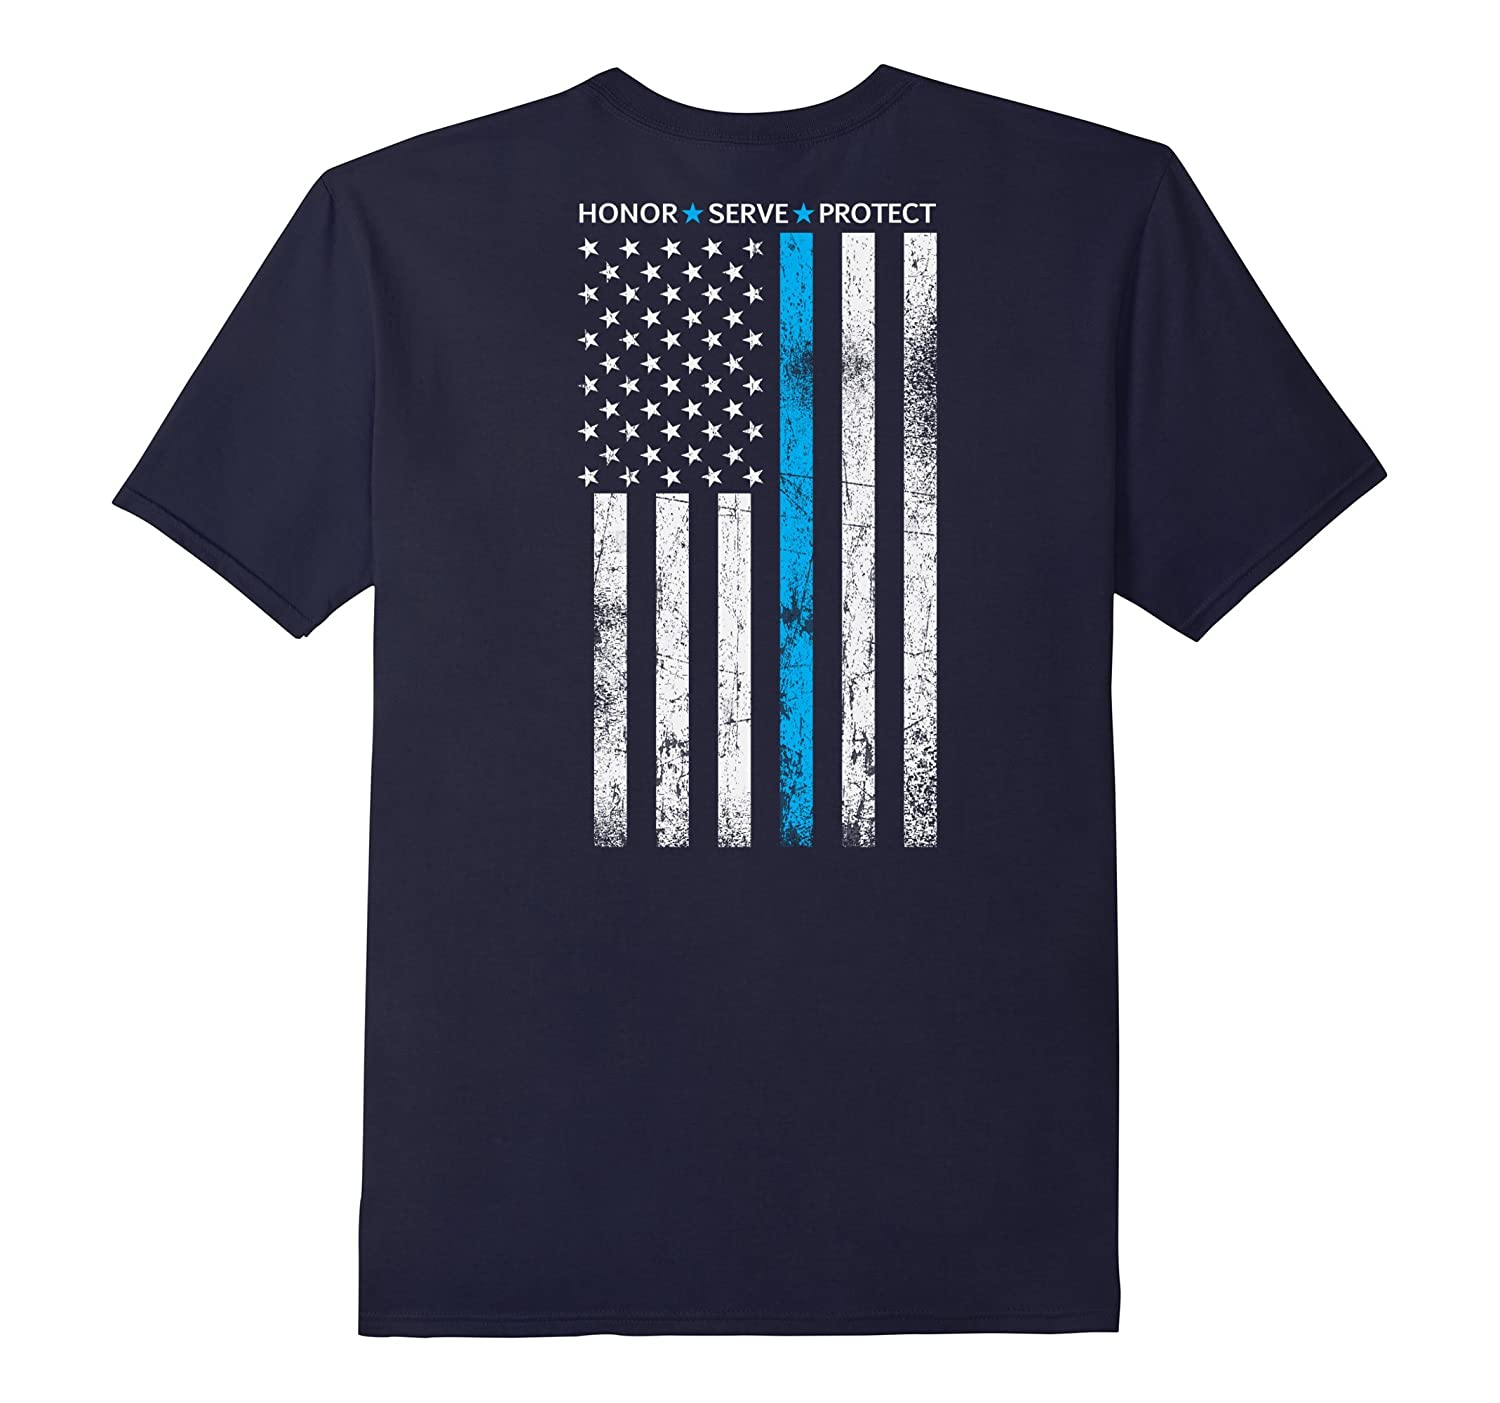 Thin Blue Line Shirt Honor Serve Protect